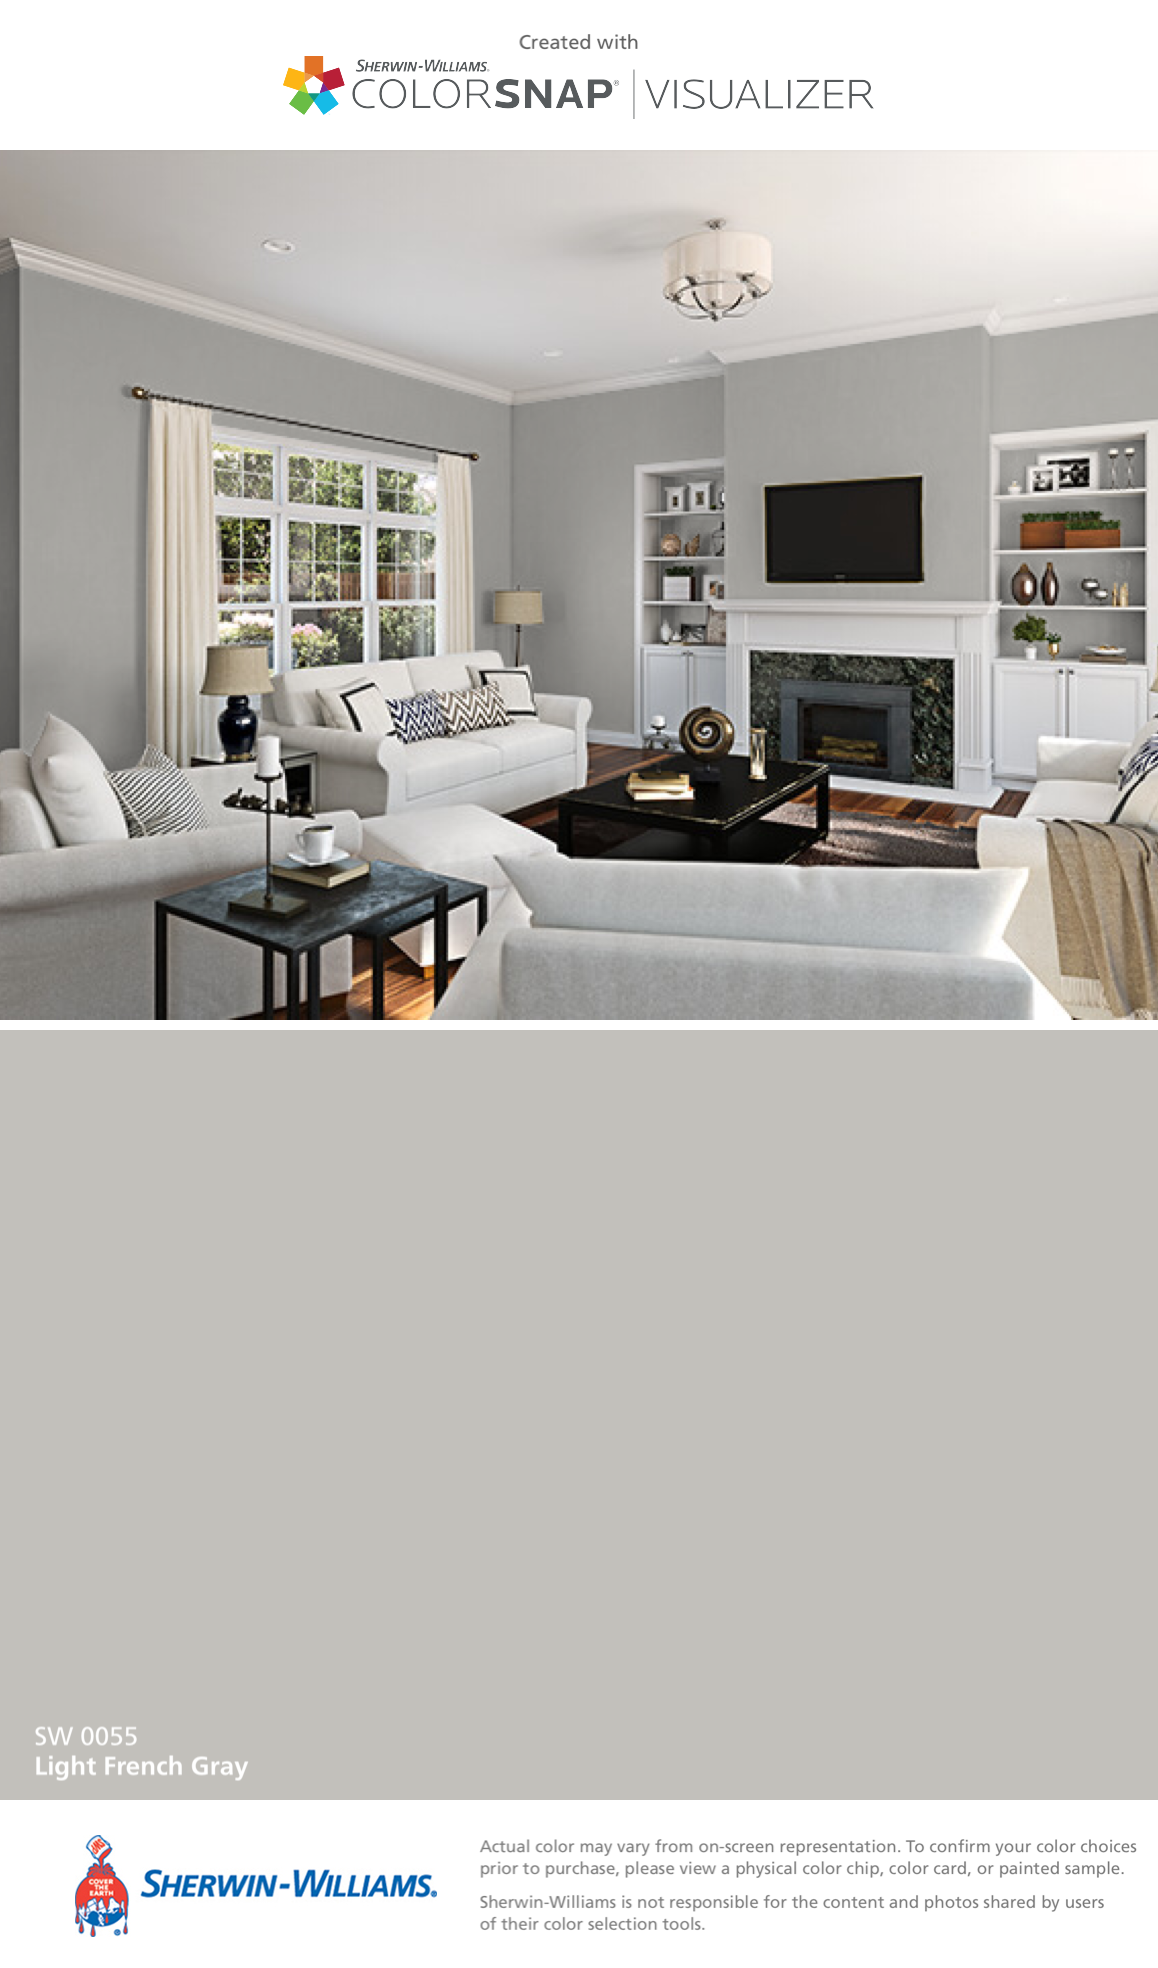 I Found This Color With Colorsnap Visualizer For Iphone By Sherwin Williams Light French Gray Sw 0055